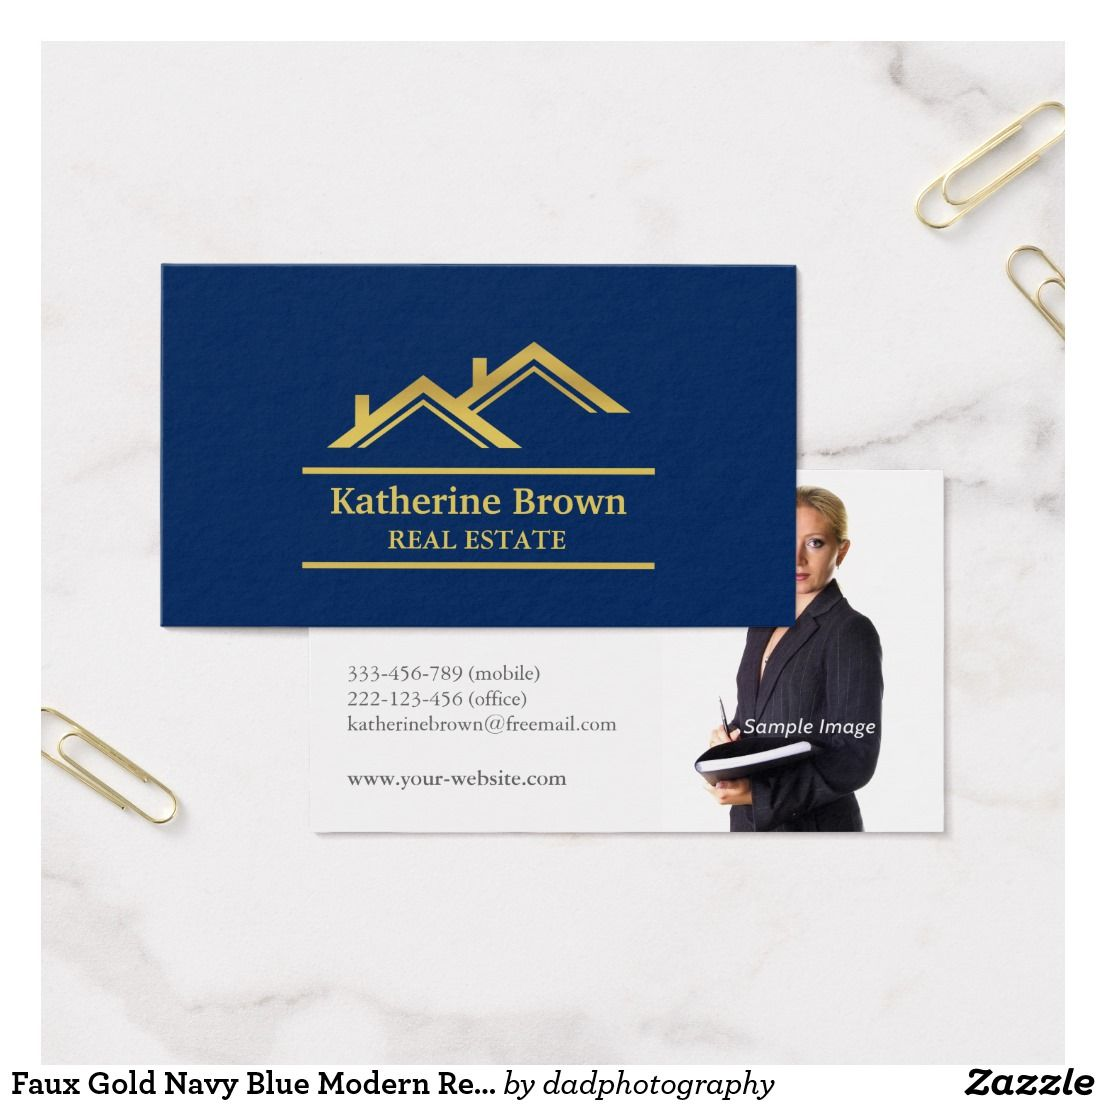 Faux Gold Navy Blue Modern Real Estate Realtor Business Card